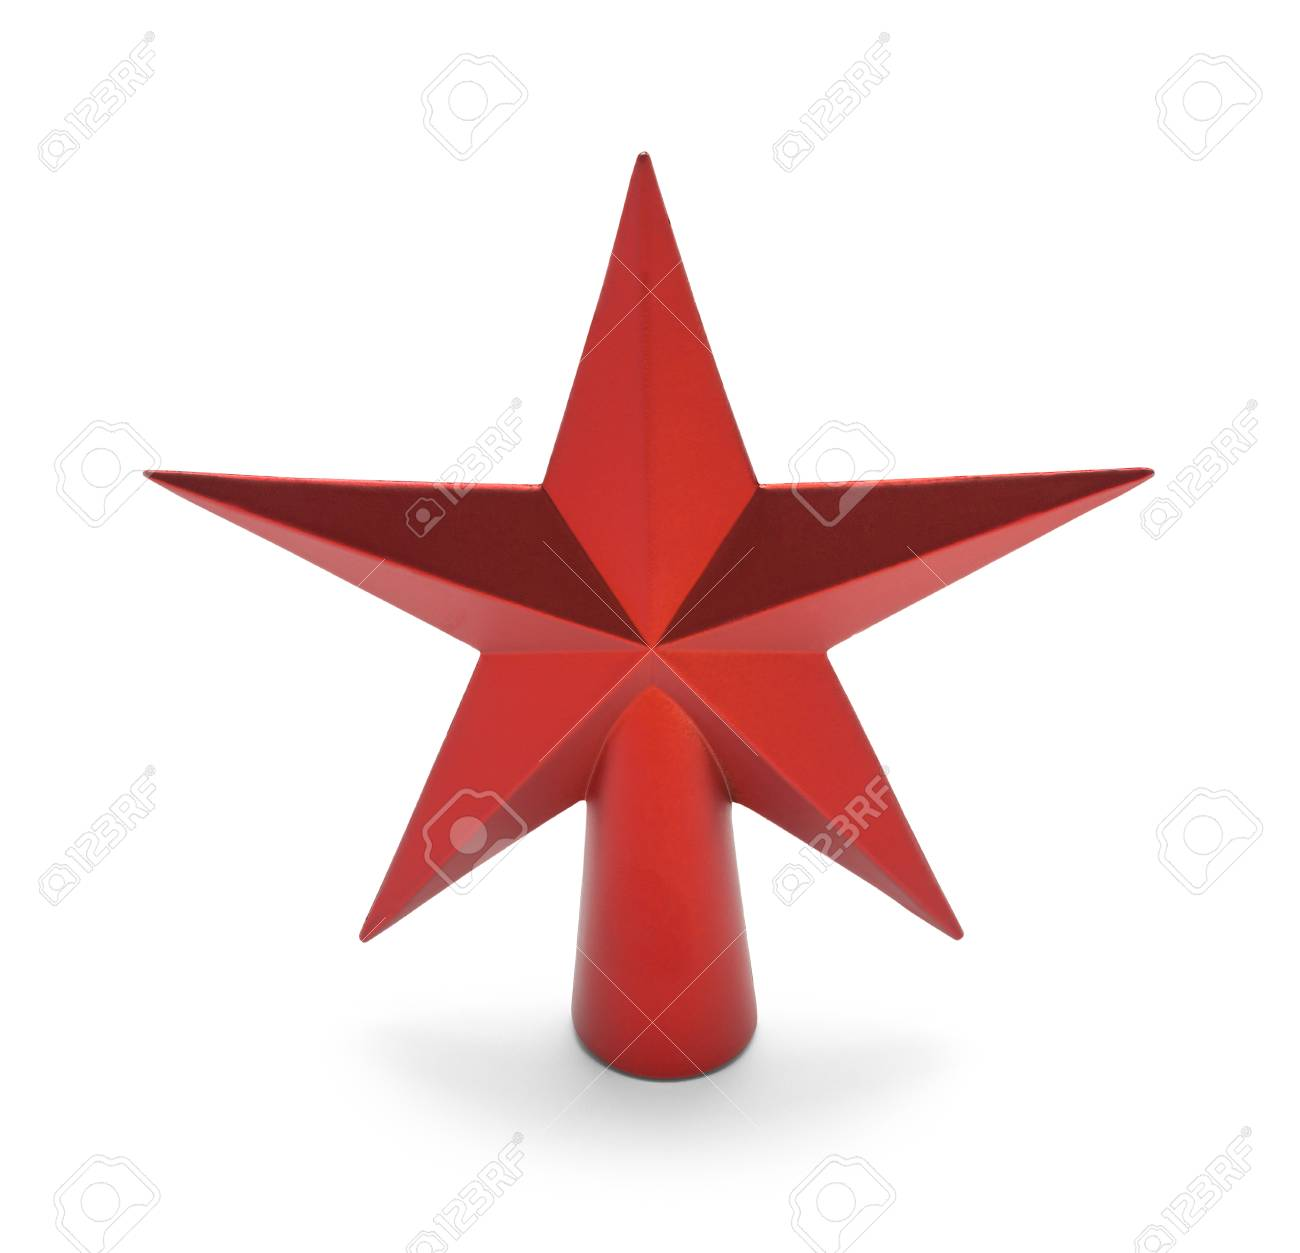 Red Star Christmas Tree Topper Isolated On White Background